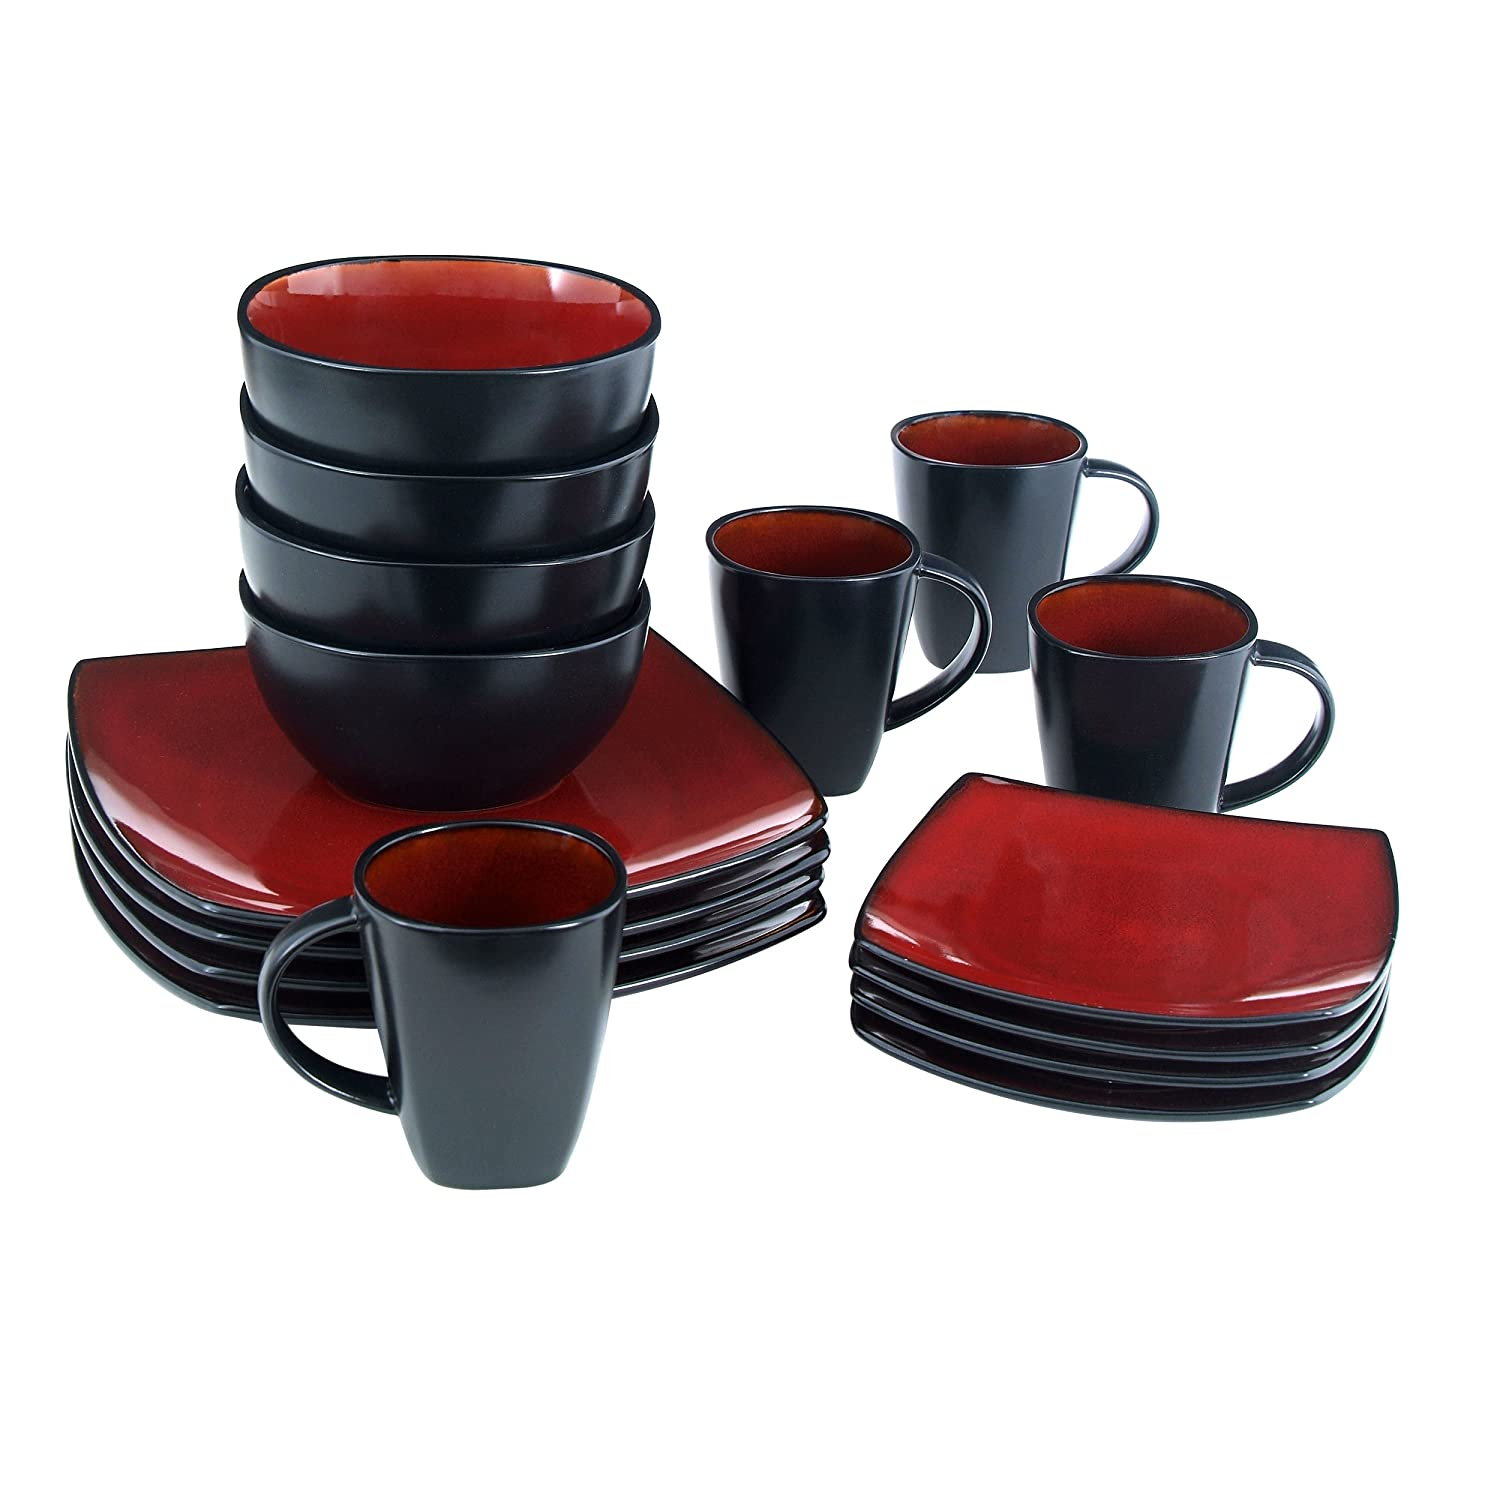 amazoncom gibson soho lounge 16piece square reactive glaze dinnerware set red dinnerware sets - Stoneware Dishes